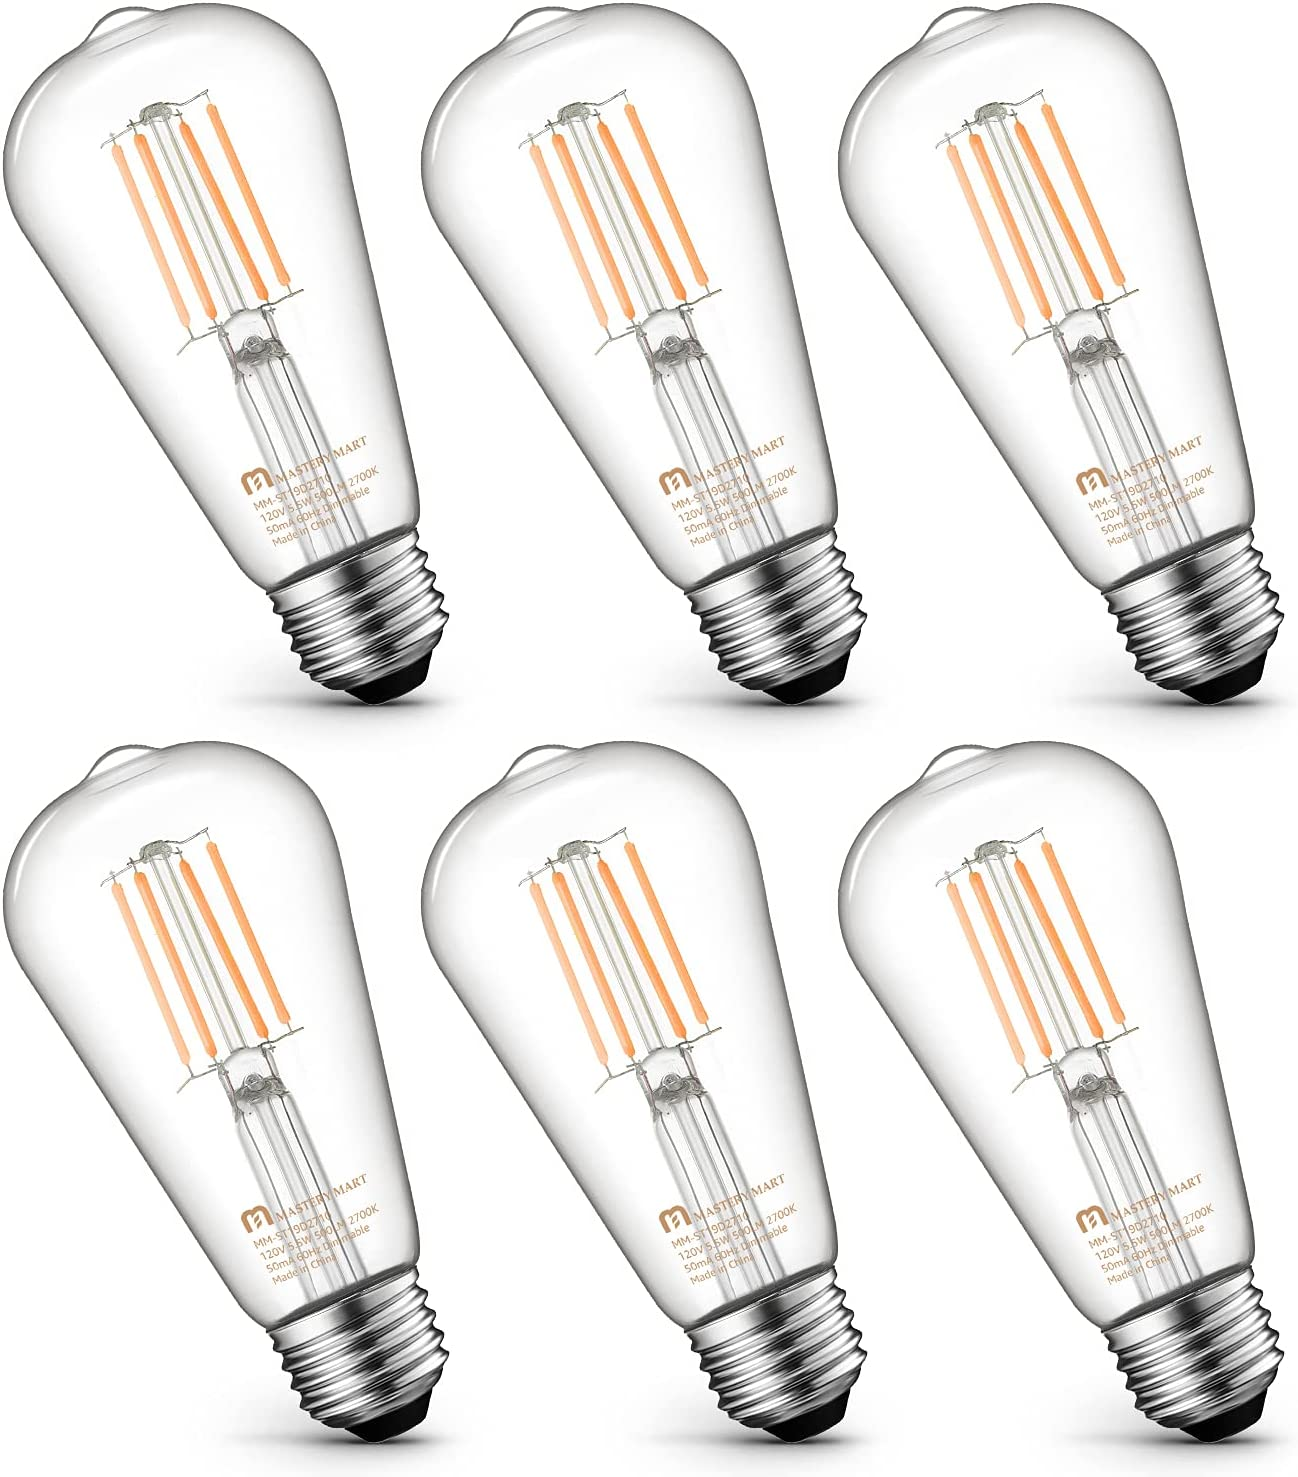 Mastery Mart Vintage Challenge the lowest Fort Worth Mall price of Japan ☆ LED Light Bulb Edison Antique Glass ST21 S